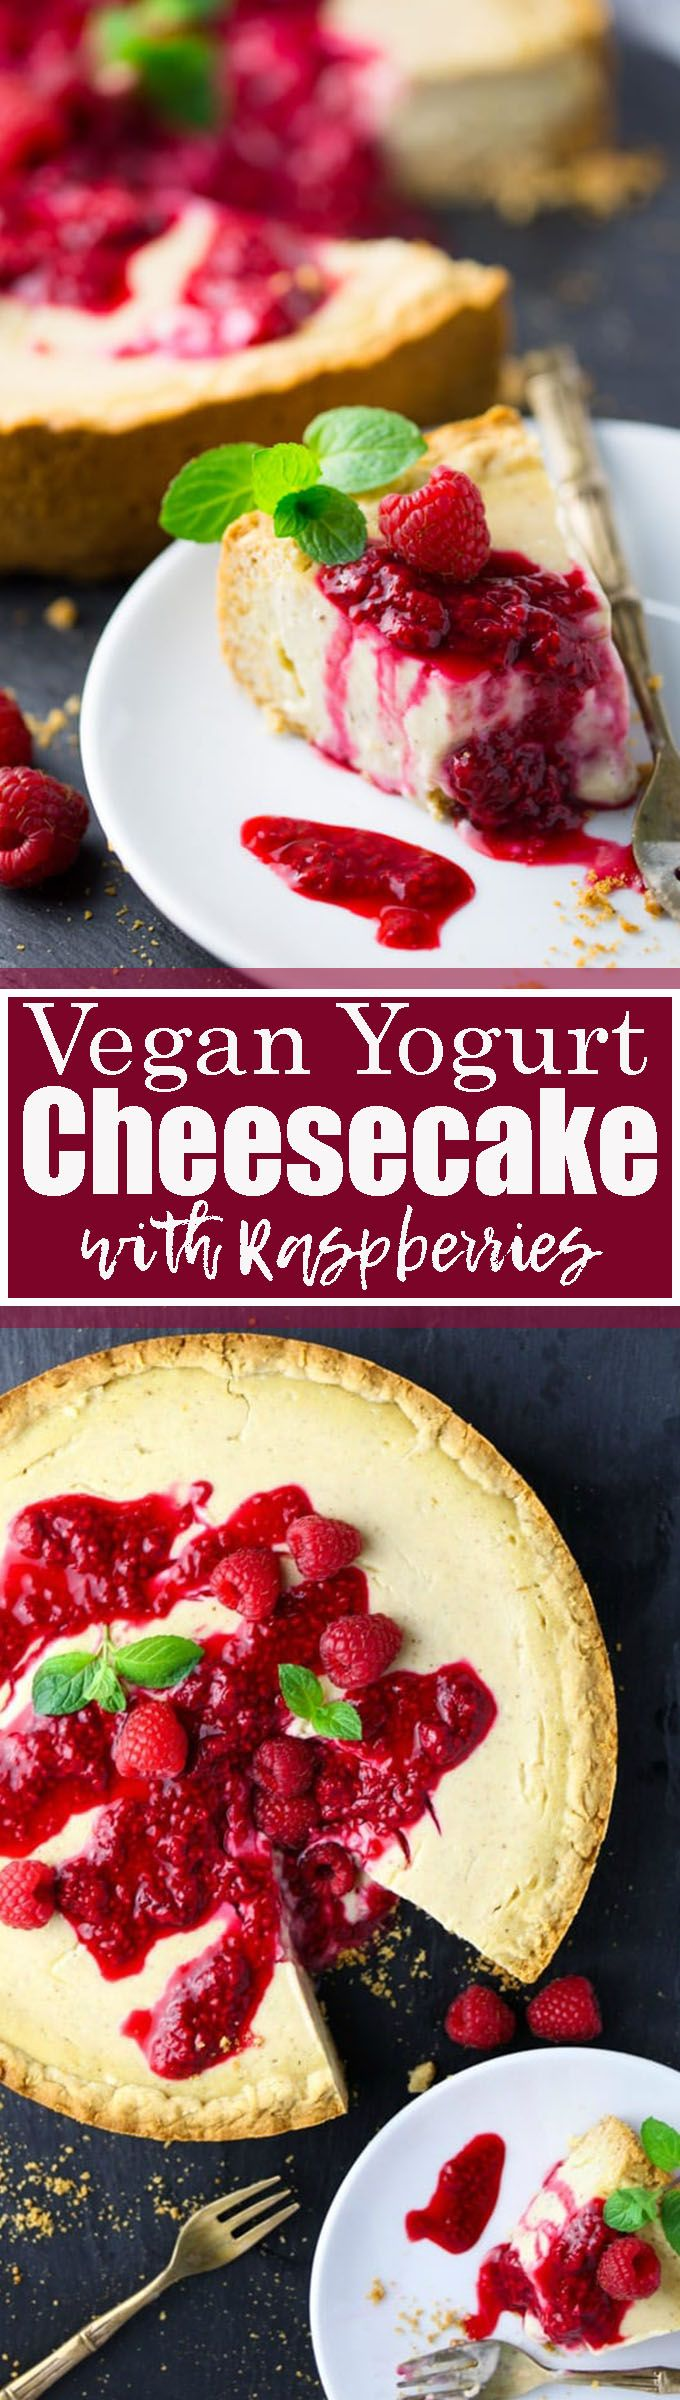 This vegan cheesecake with raspberry sauce is one of my favorite vegan dessert recipes! It's made with plant-based yogurt instead of cashews, which makes it much lighter than most vegan cheesecakes!